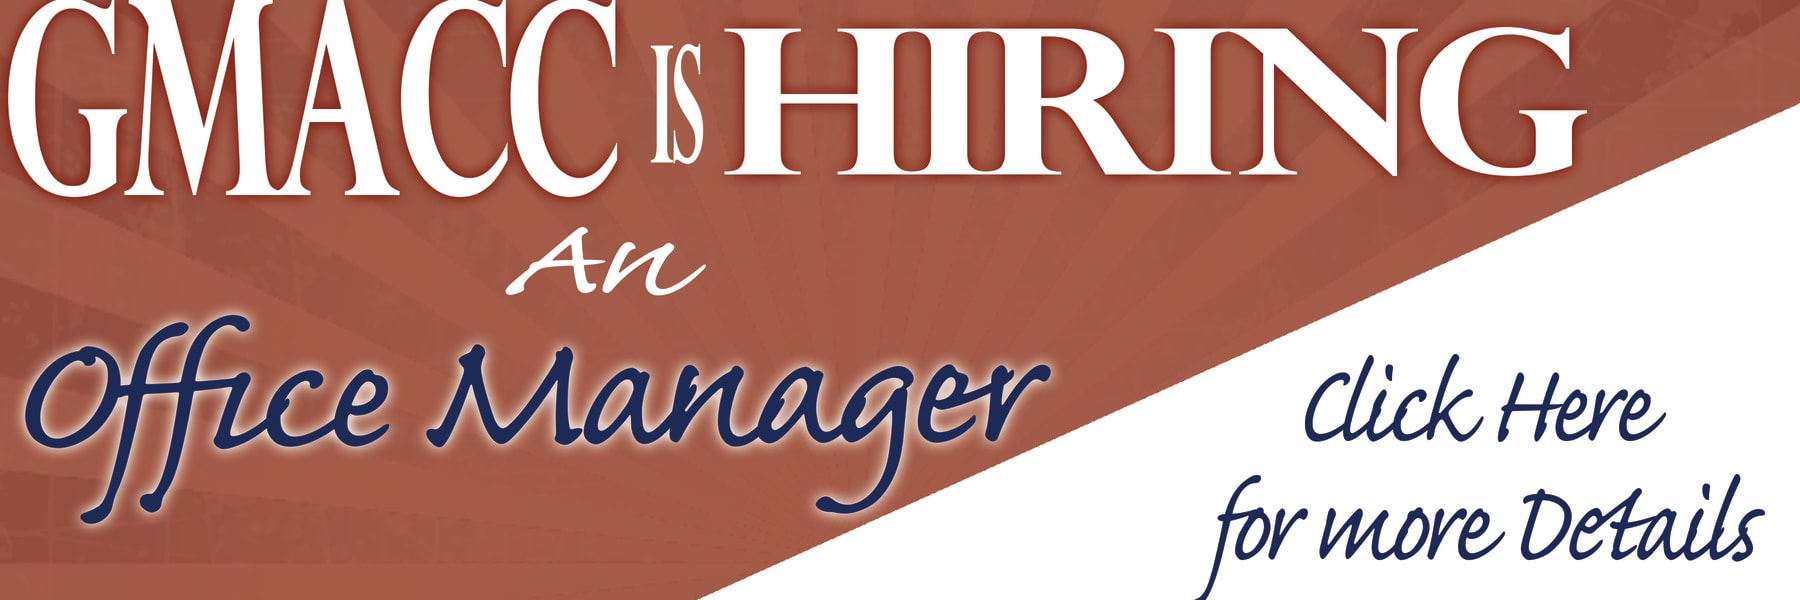 Office-Manager-Job-Opening-October-2018-Web-Banner-w1800.jpg